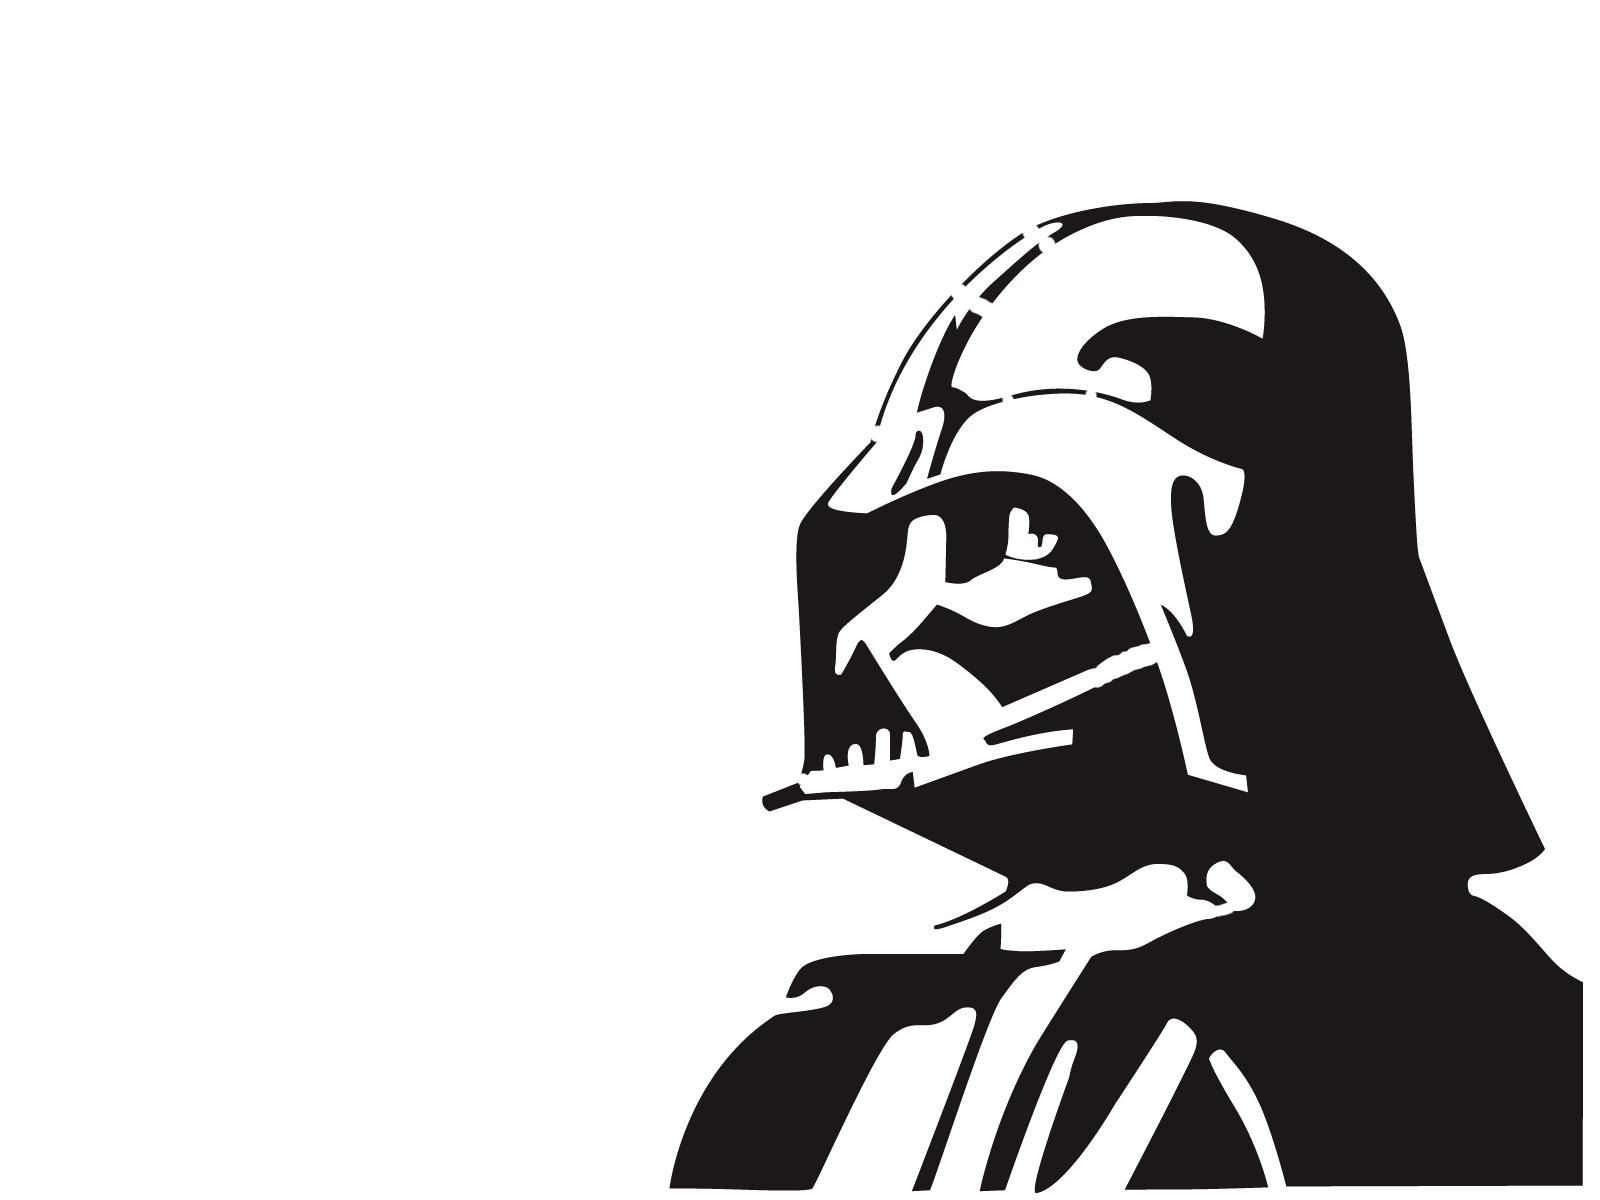 1600x1200 Darth Vader By ~graffitiwatcher On Silouettes